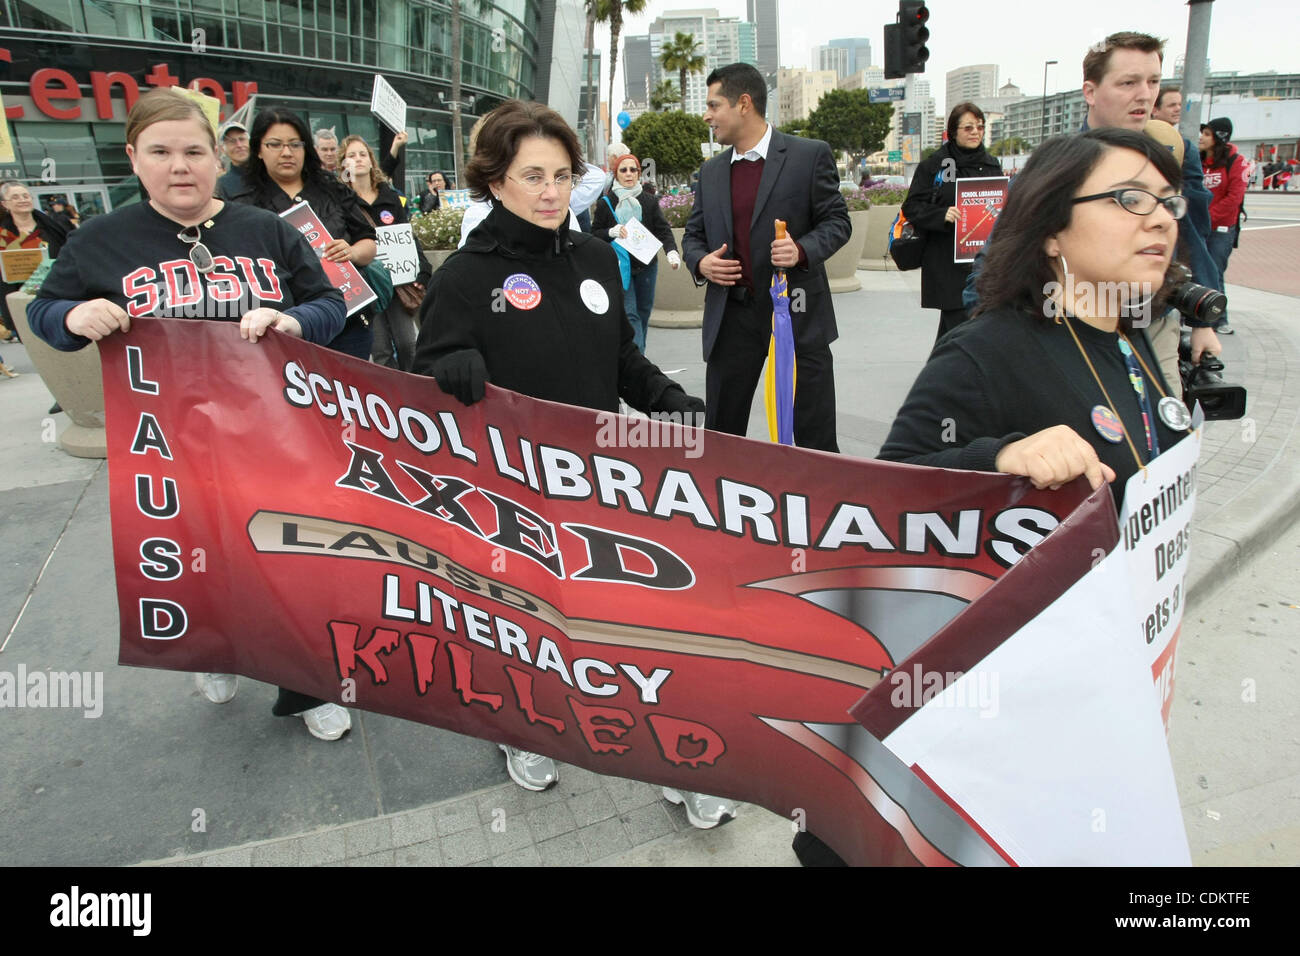 Mar 26, 2011 - Los Angeles, California, U.S. - School librarians march for LAUSD (Los Angeles Unified School District). - Stock Image